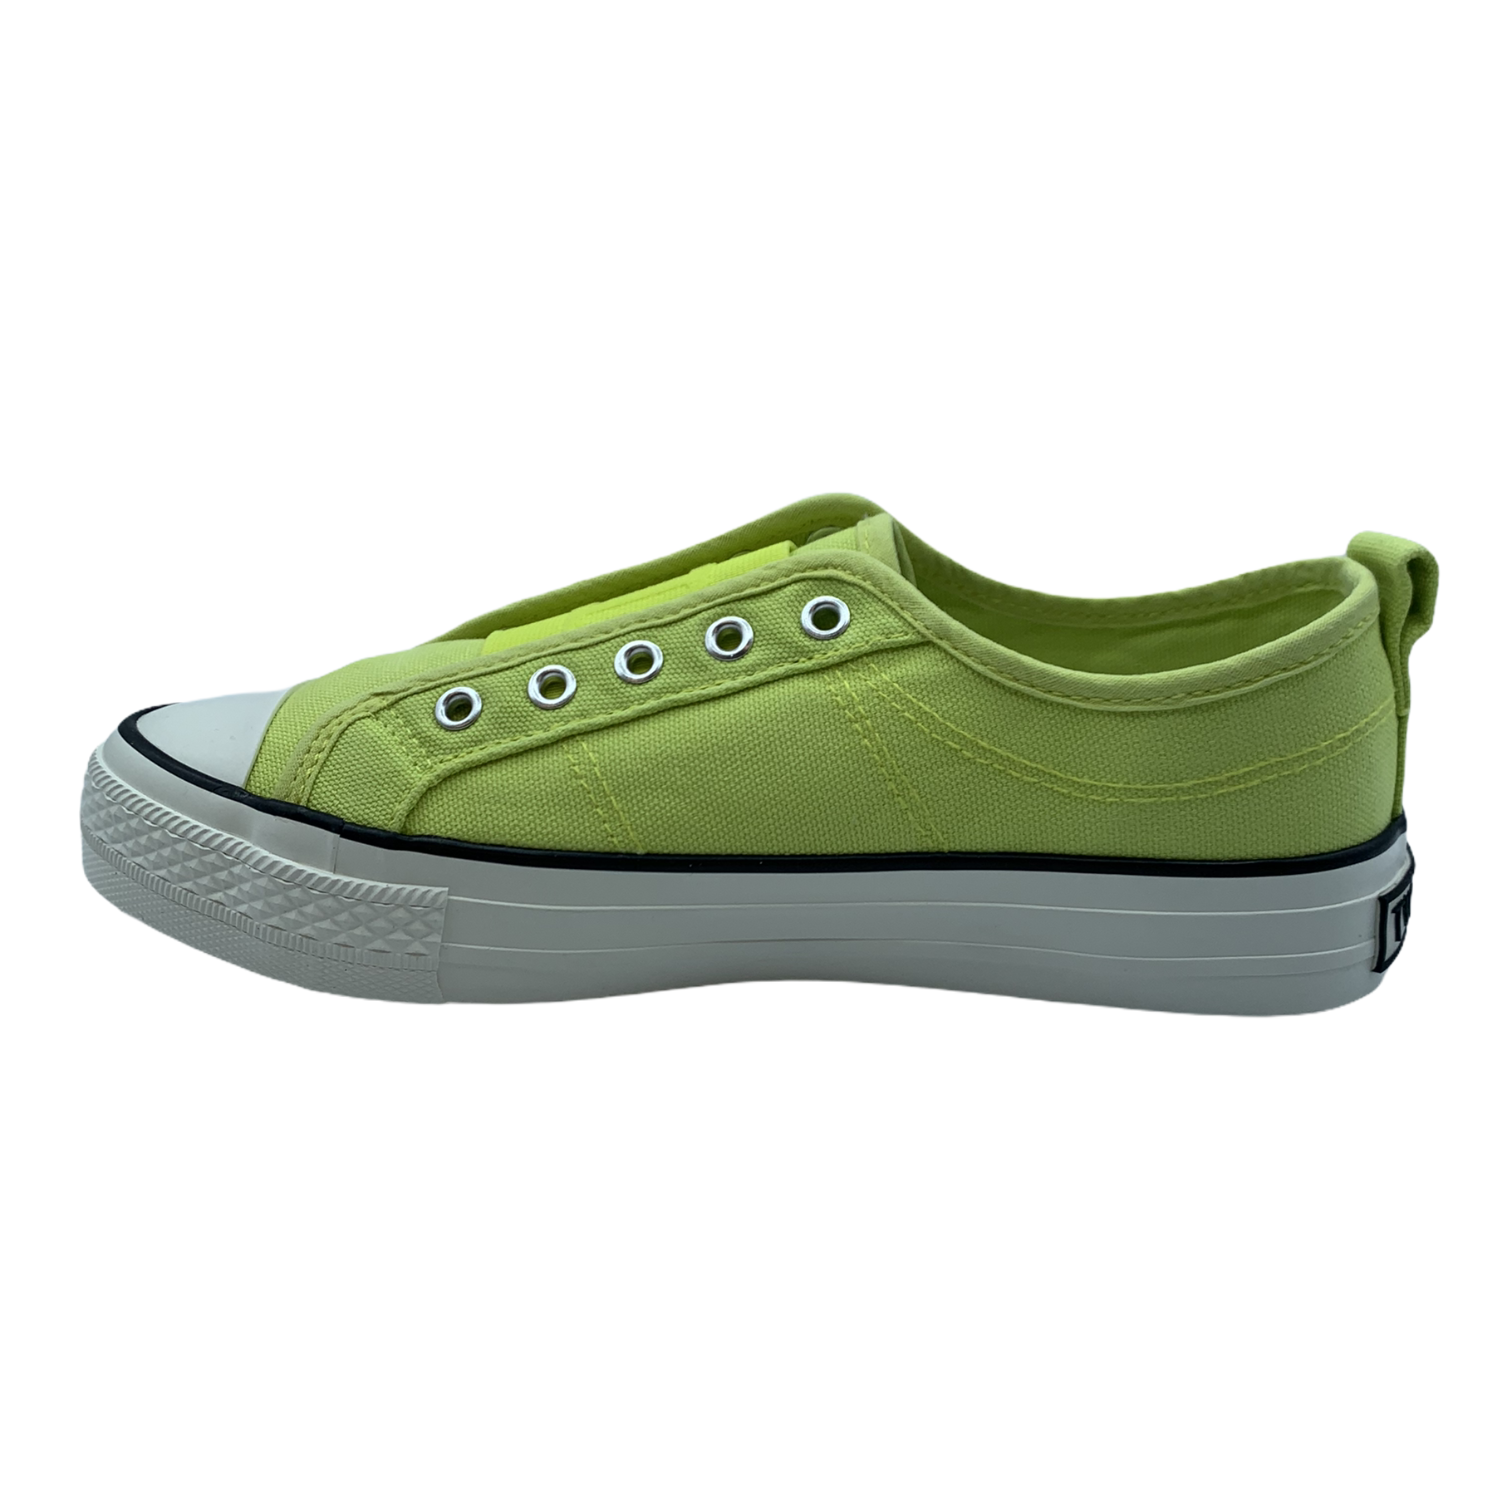 SHOPPING ON LINE TWINSET MILANO SNEAKERS IN CANVAS  NEW COLLECTION WOMEN'S SPRING SUMMER 2021